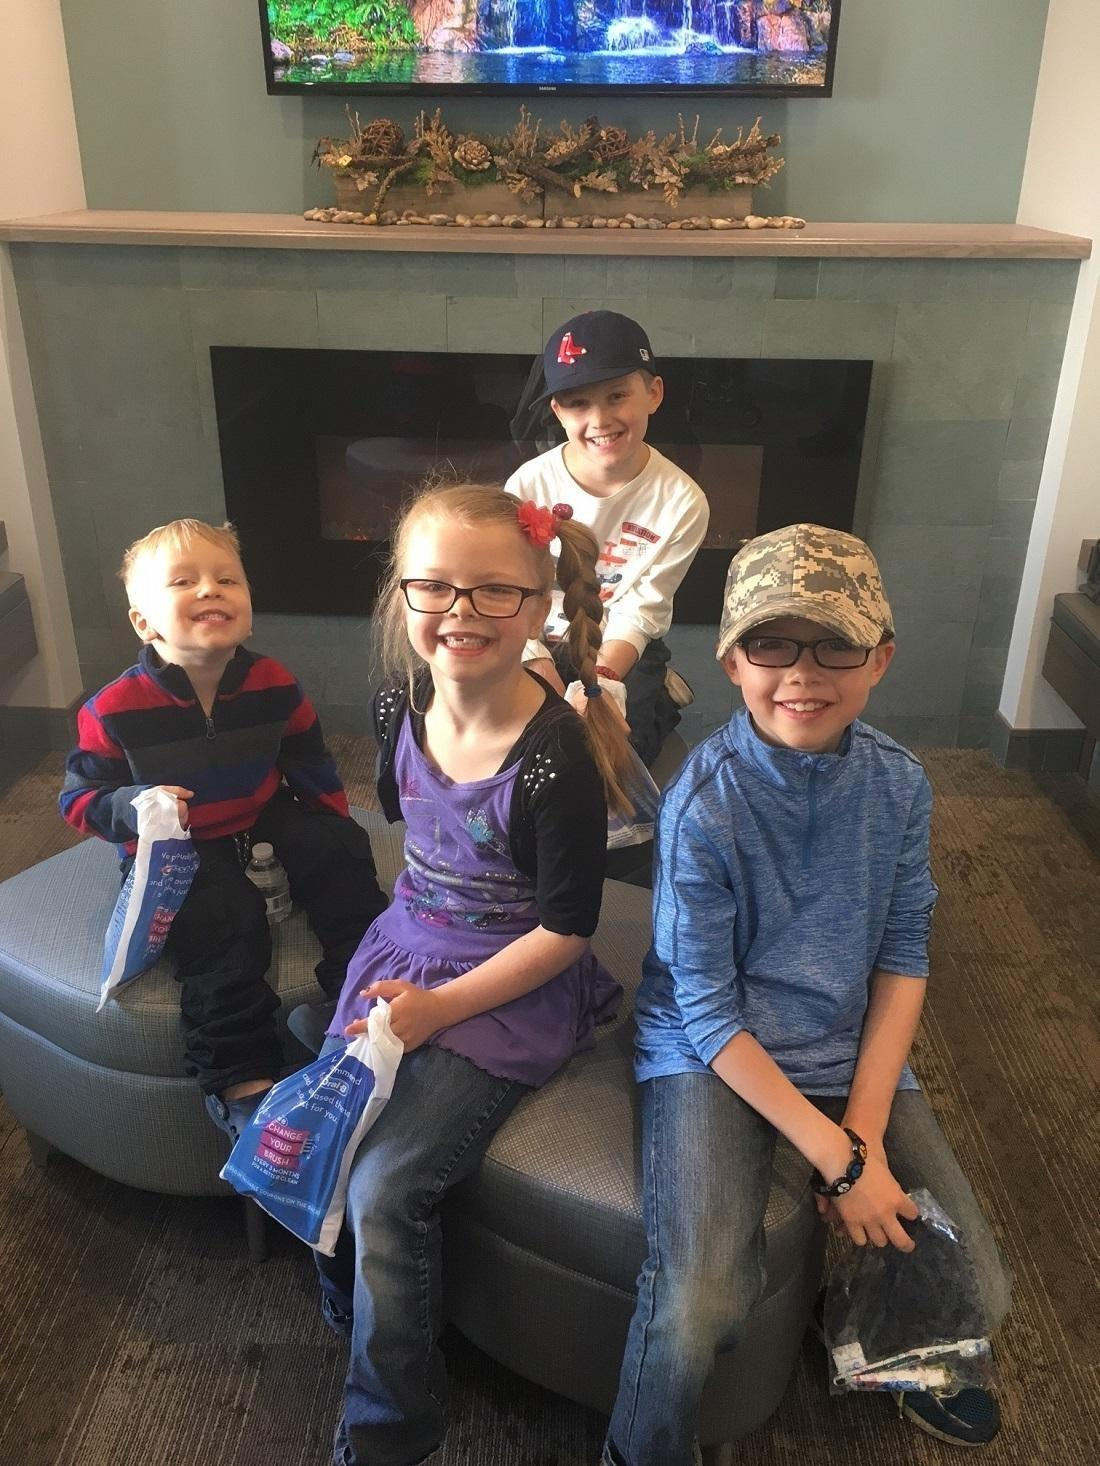 Kids after their dental appointment at White Bear Smiles